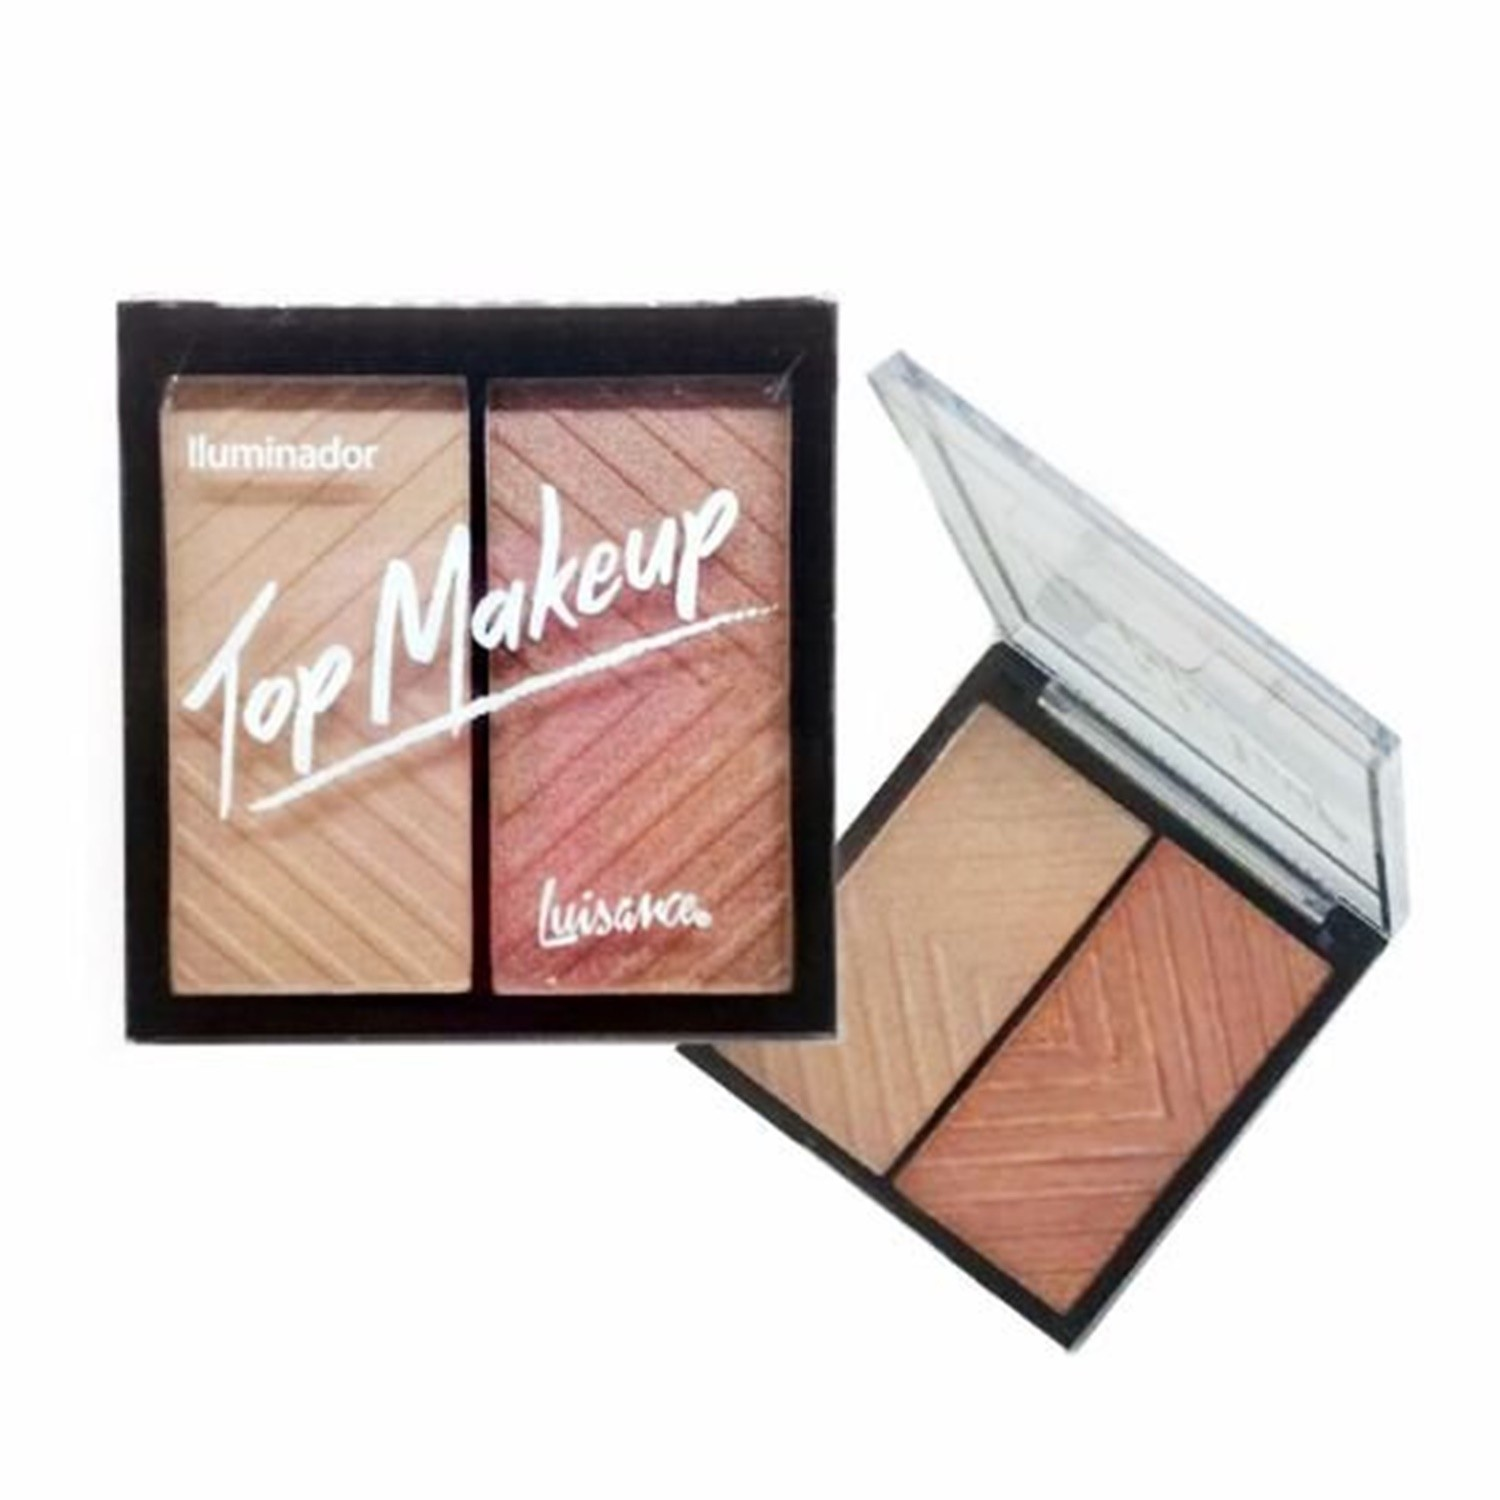 Iluminador Top Makeup - Luisance